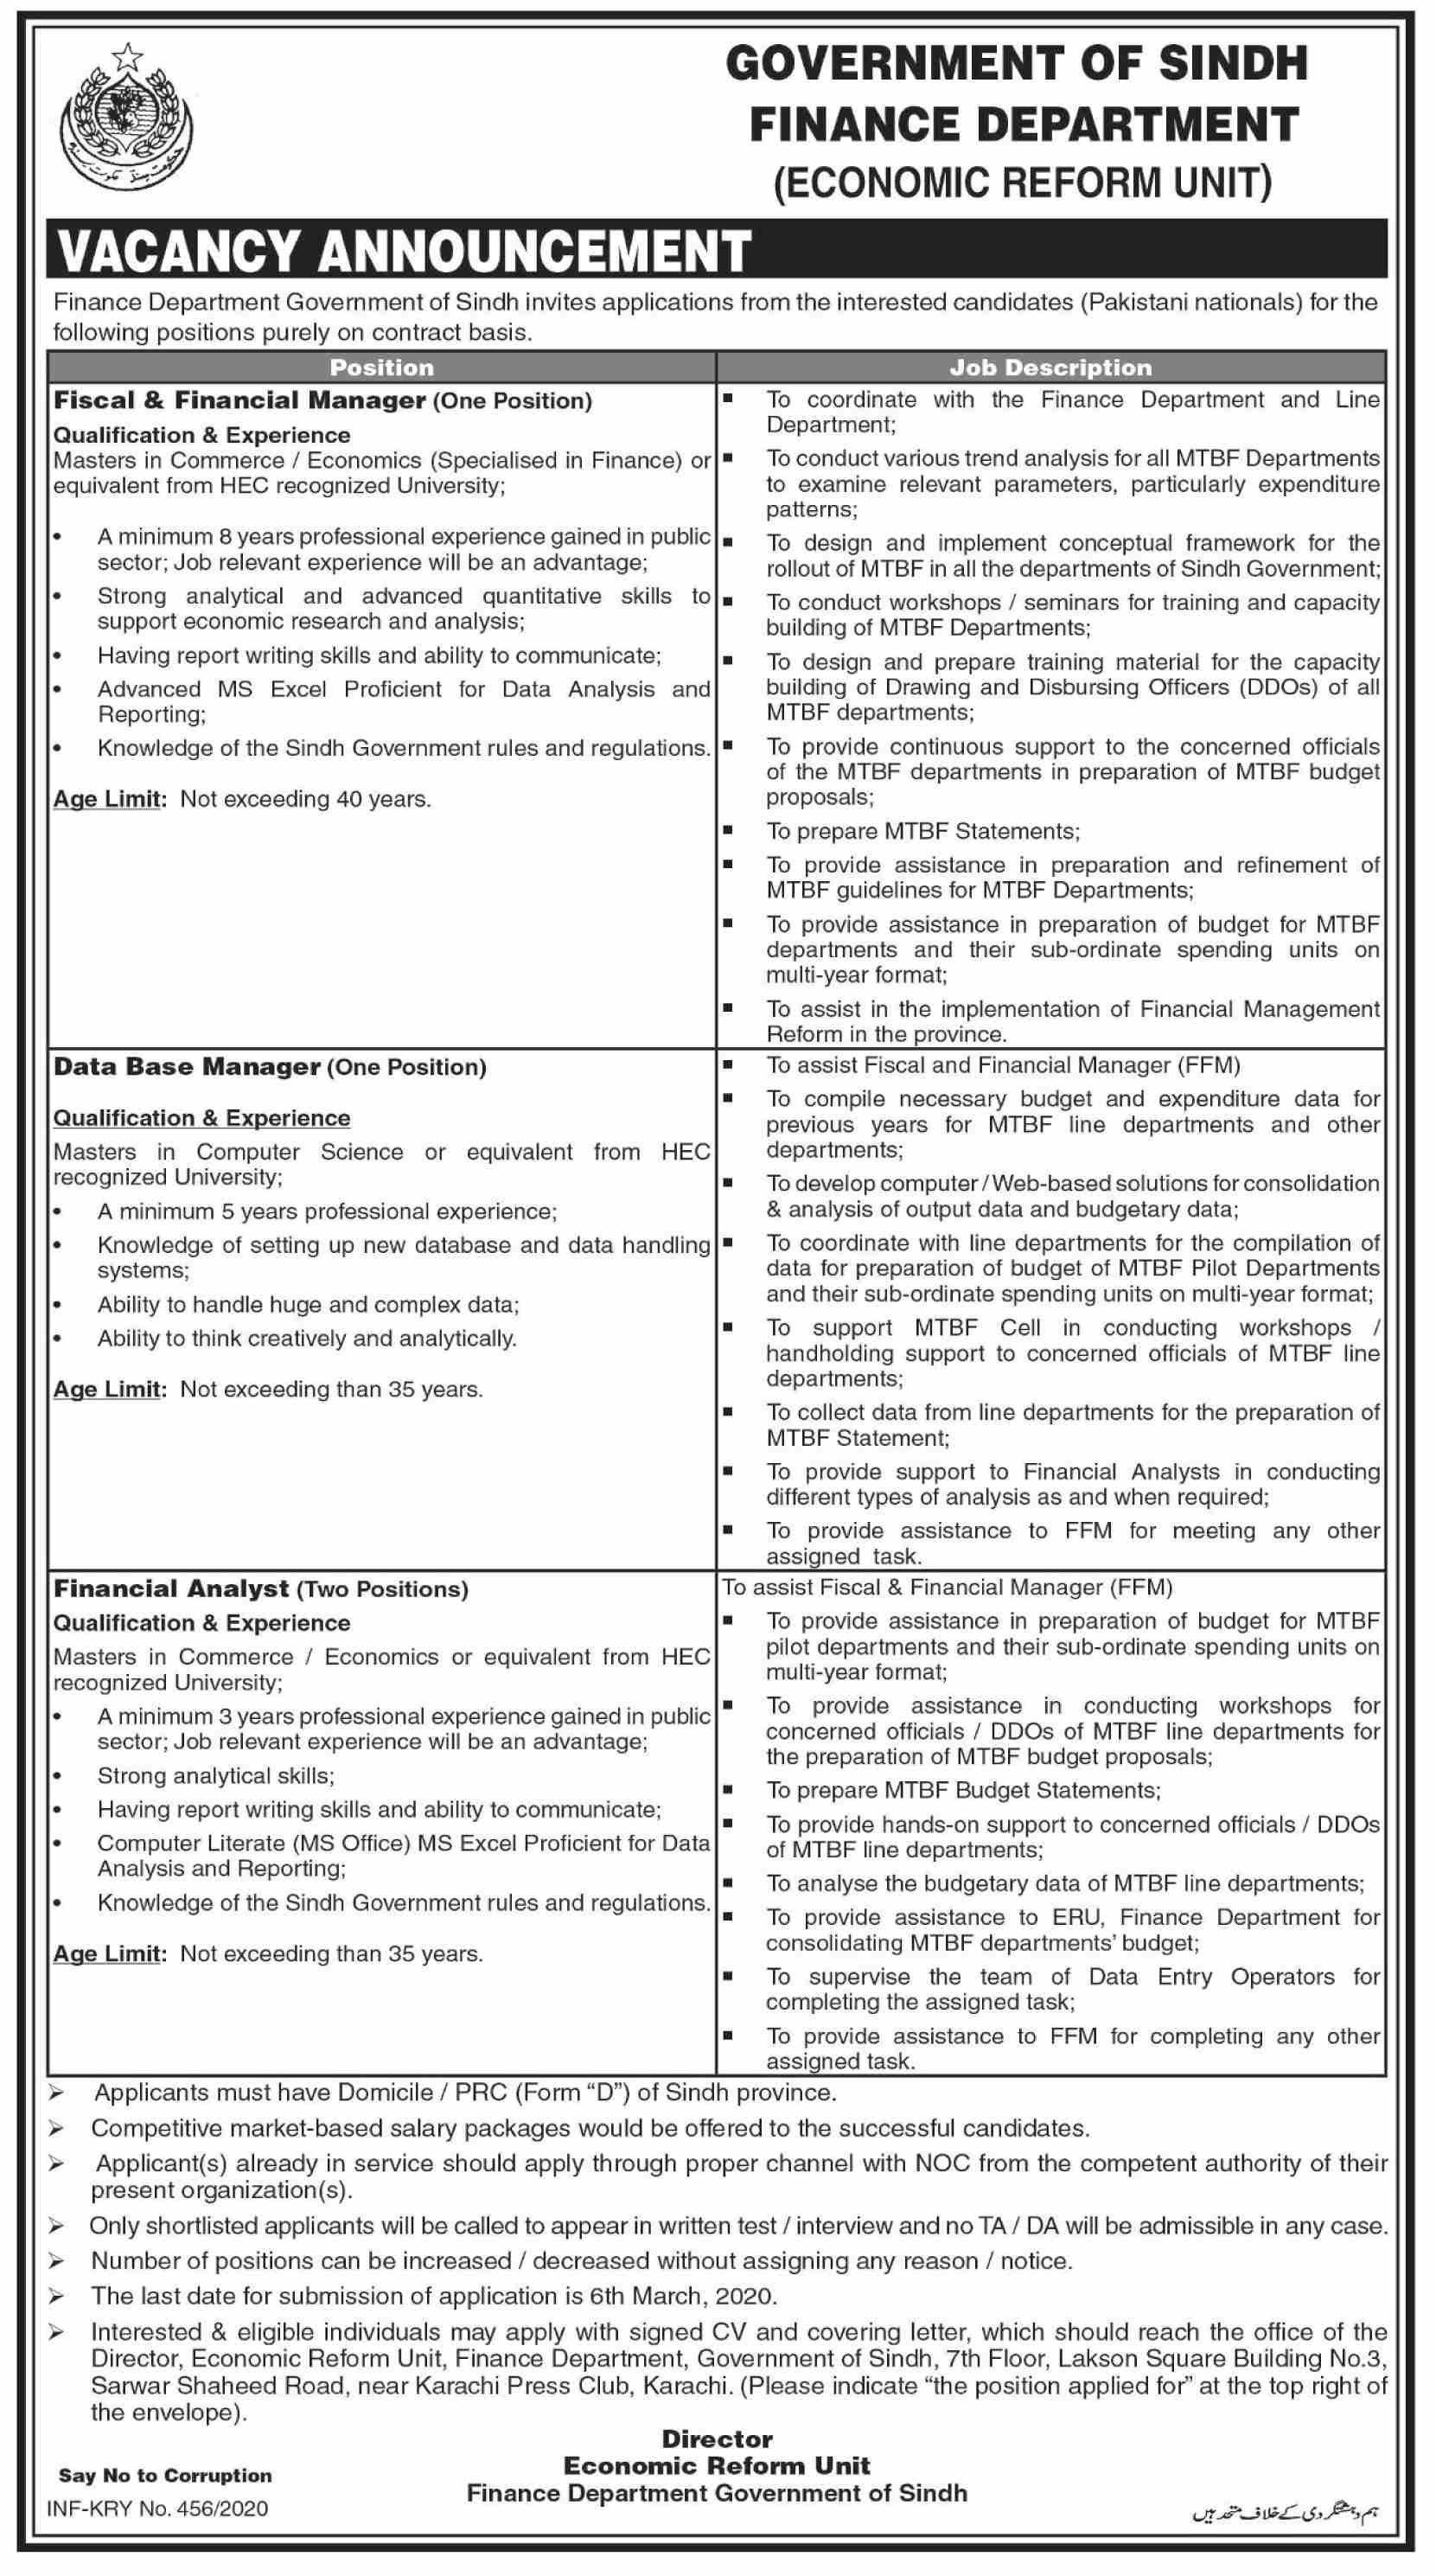 Fiscal & Financial Manager jobs in Karachi at Finance Department